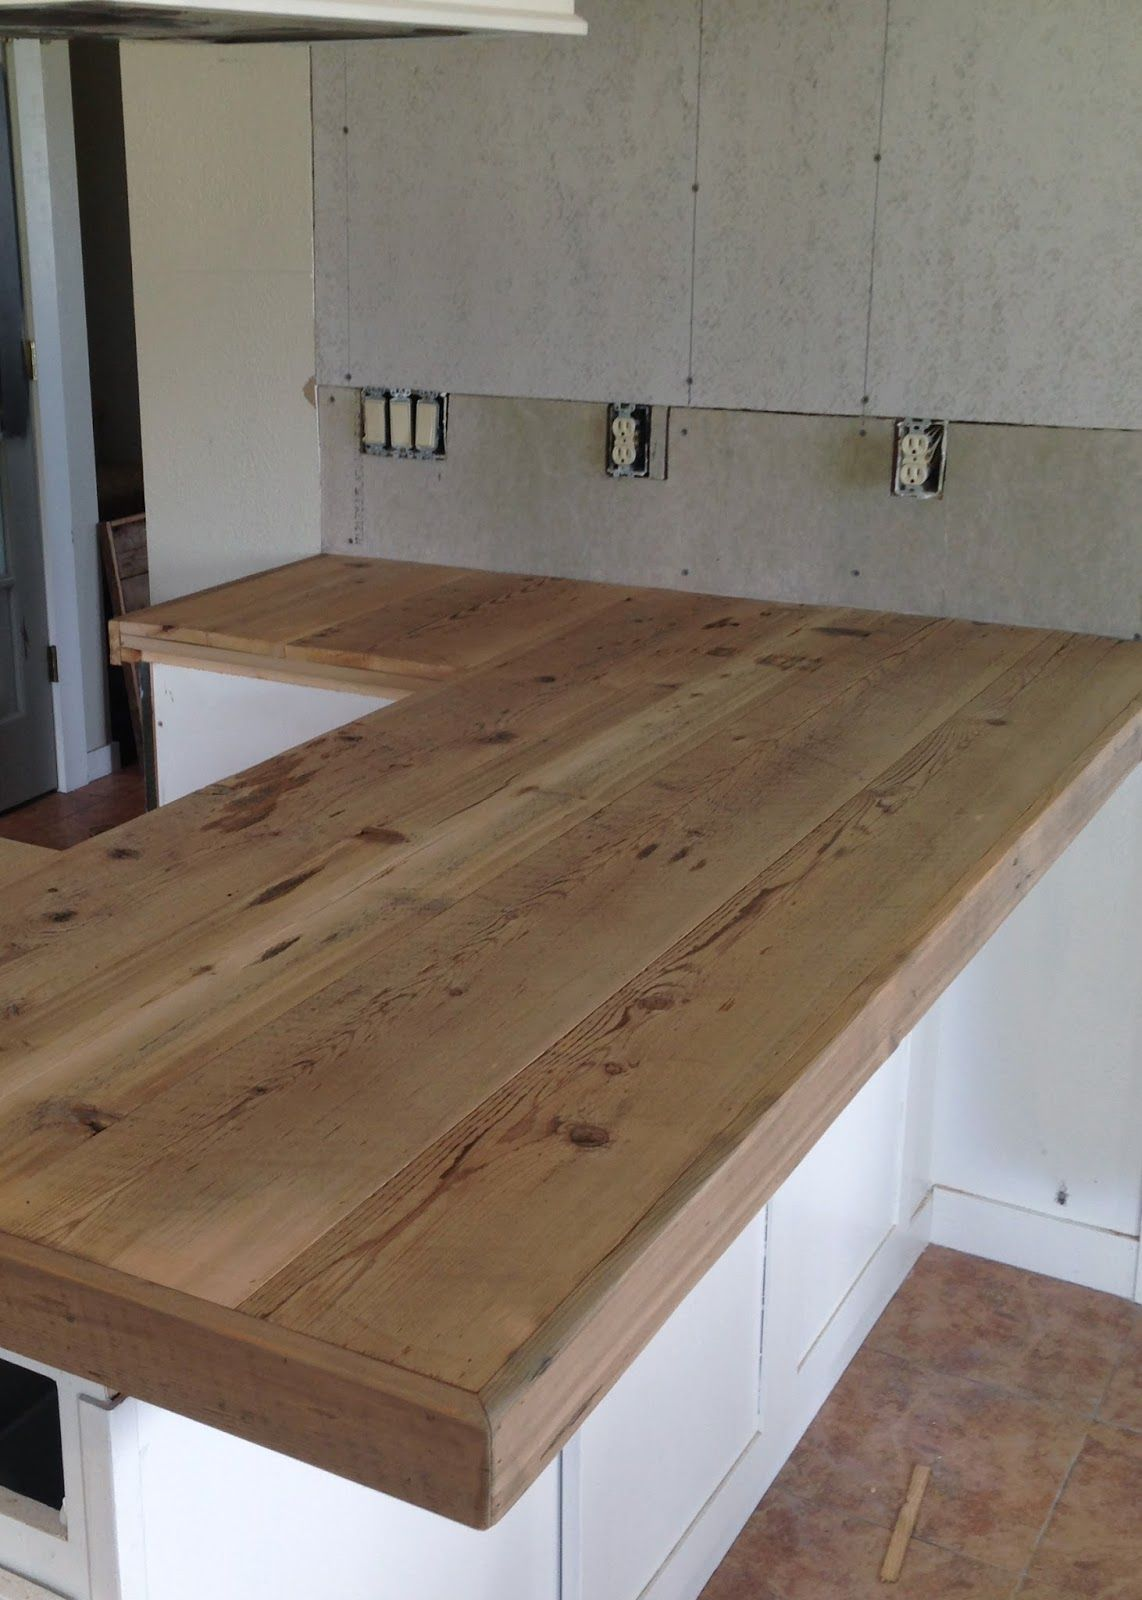 Diy Reclaimed Wood Countertop Building A Counter Top Using How We